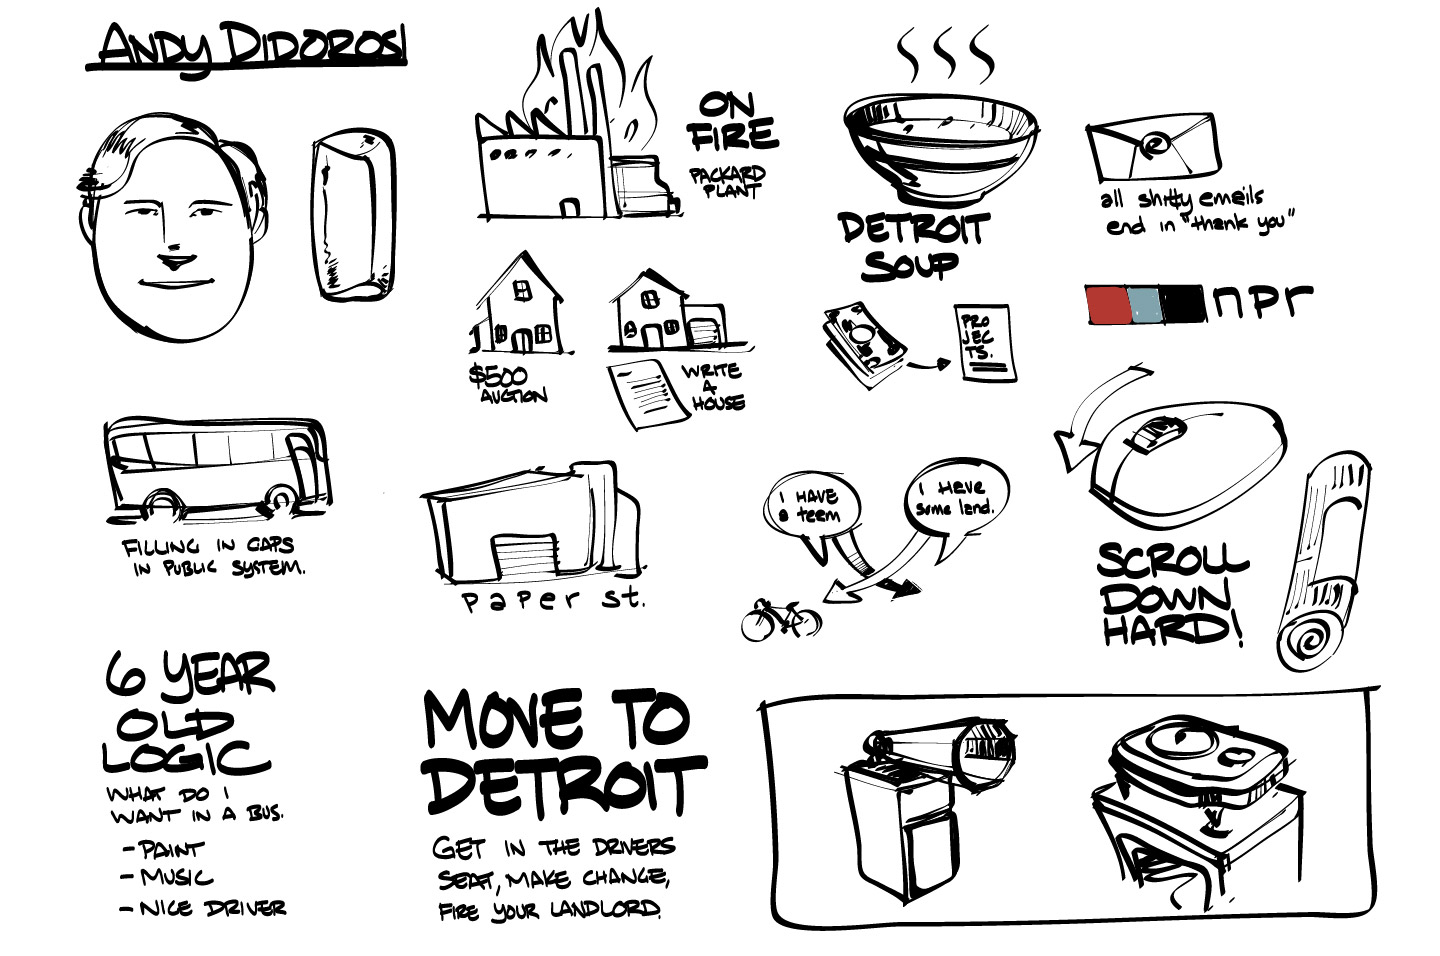 Notes from 99U speaker, Andy Didorosi.